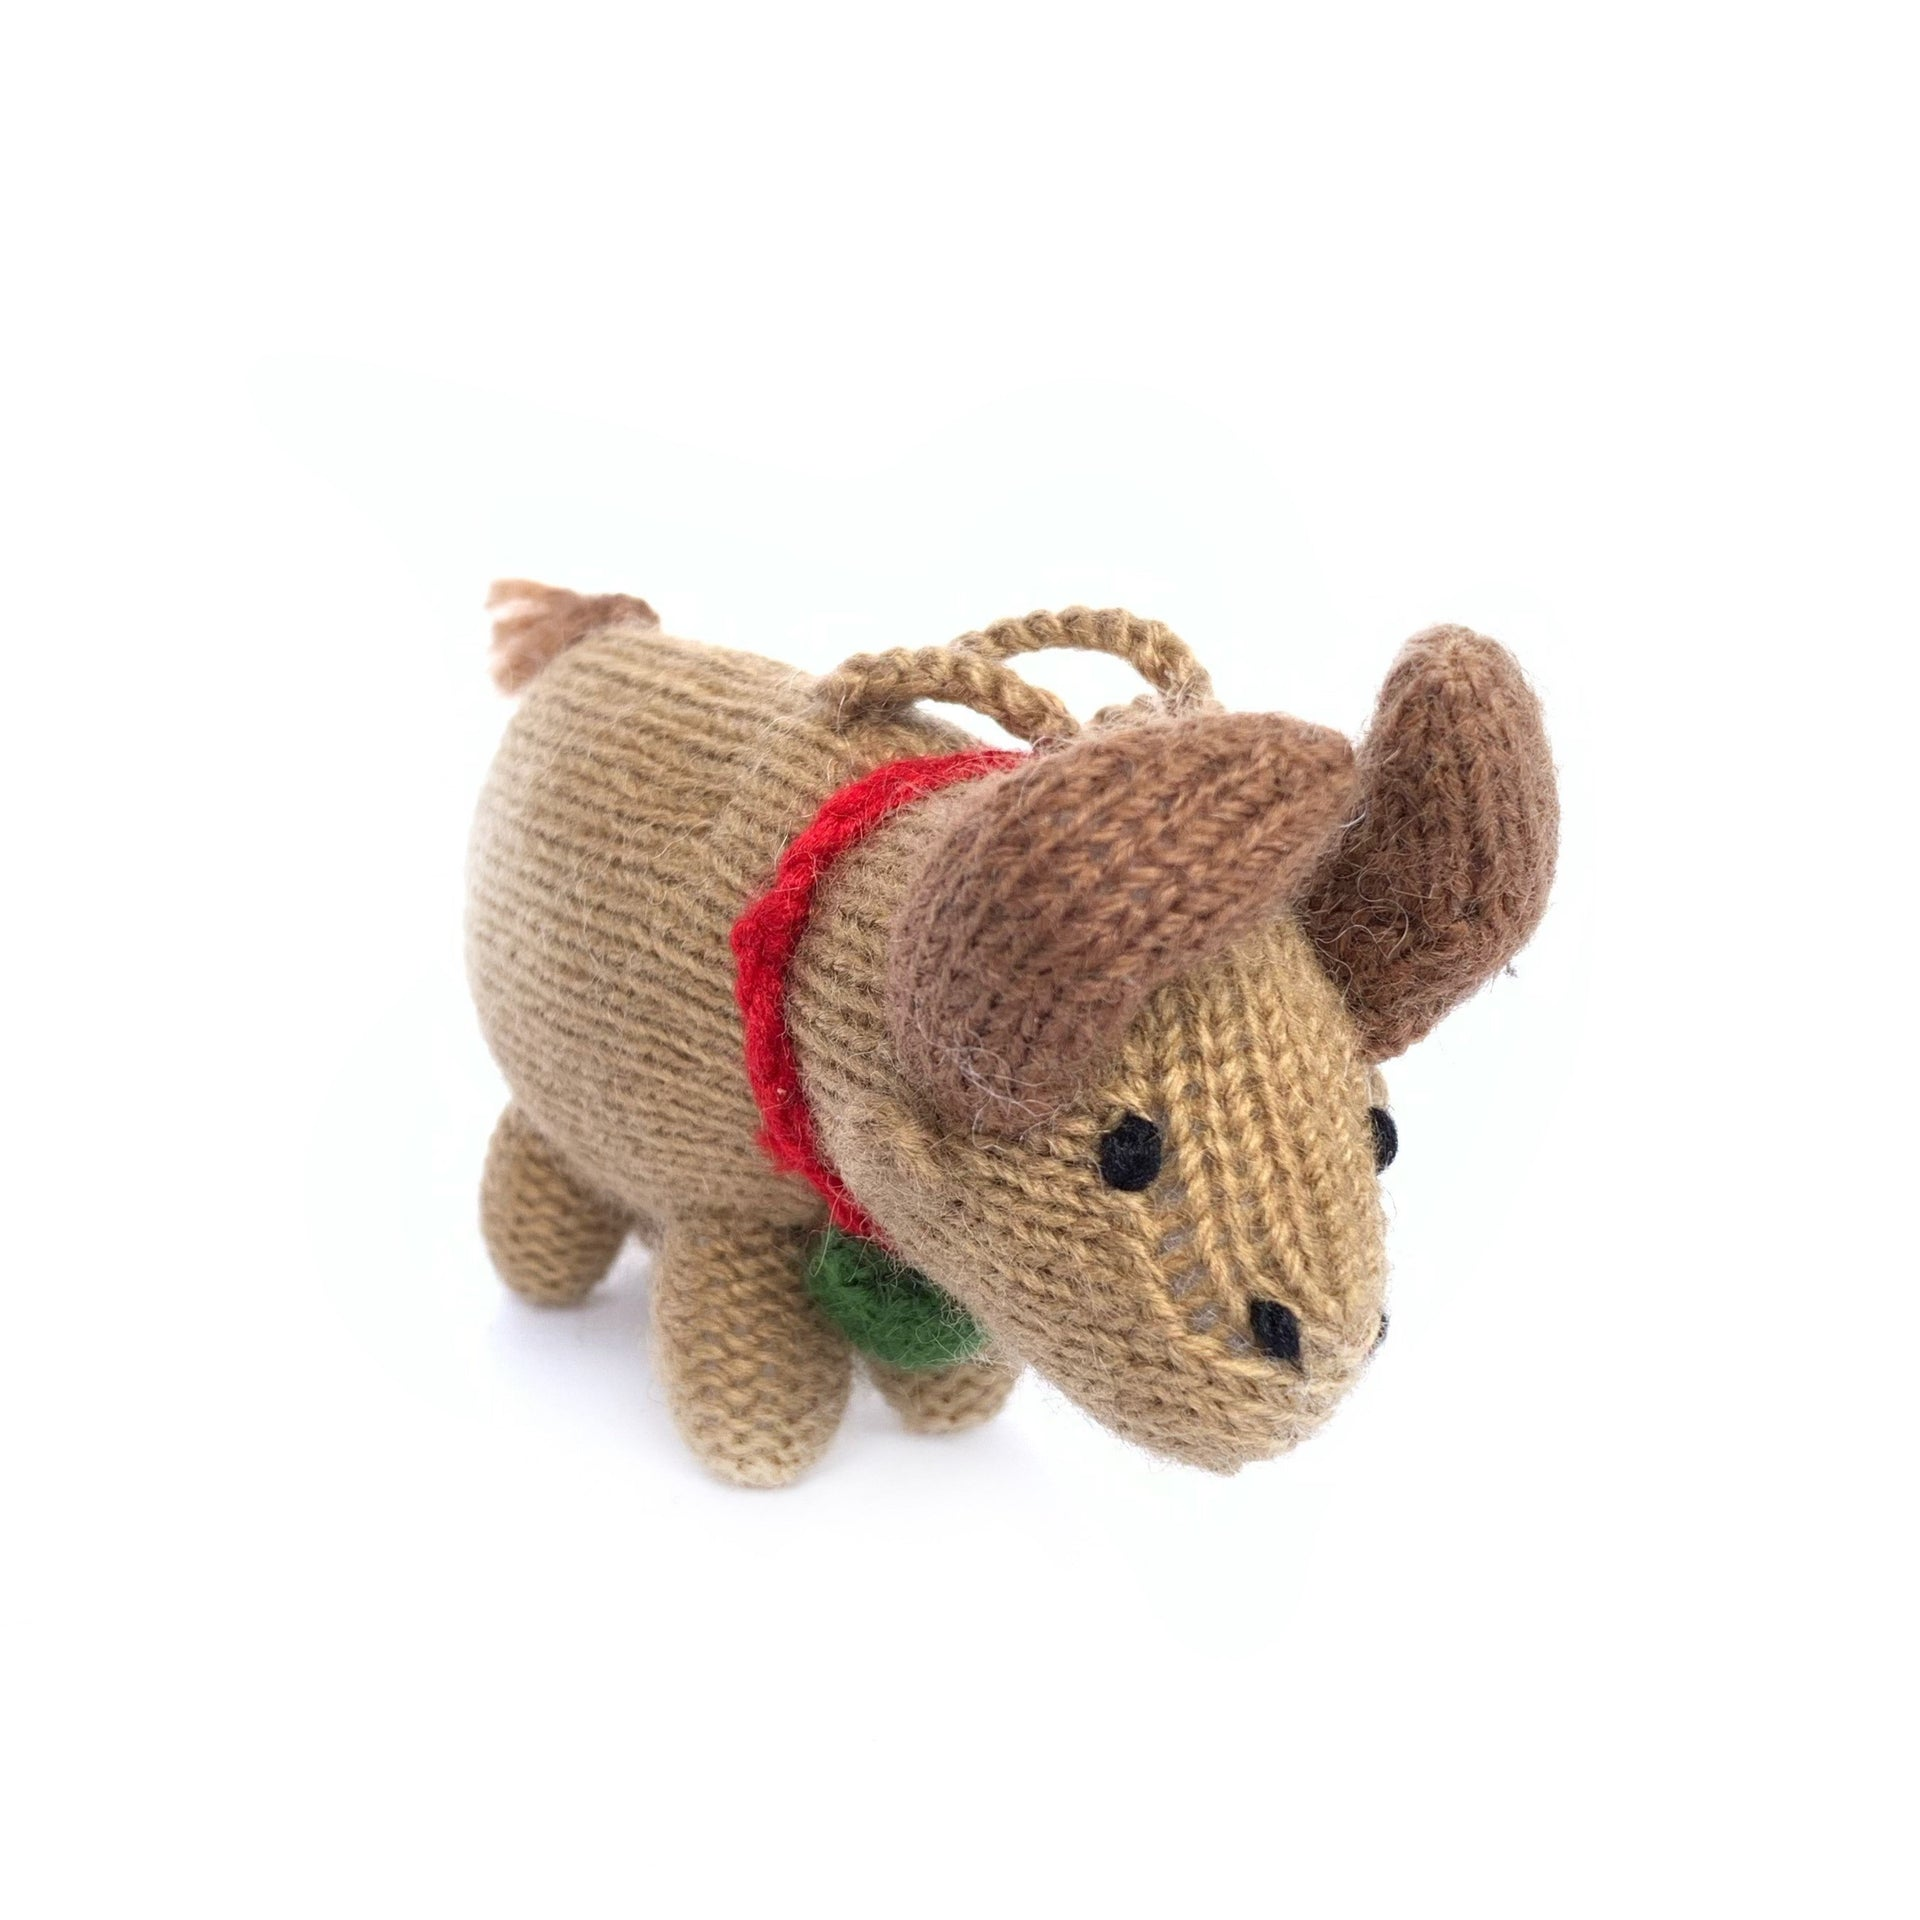 Cow Ornament, Knit Wool